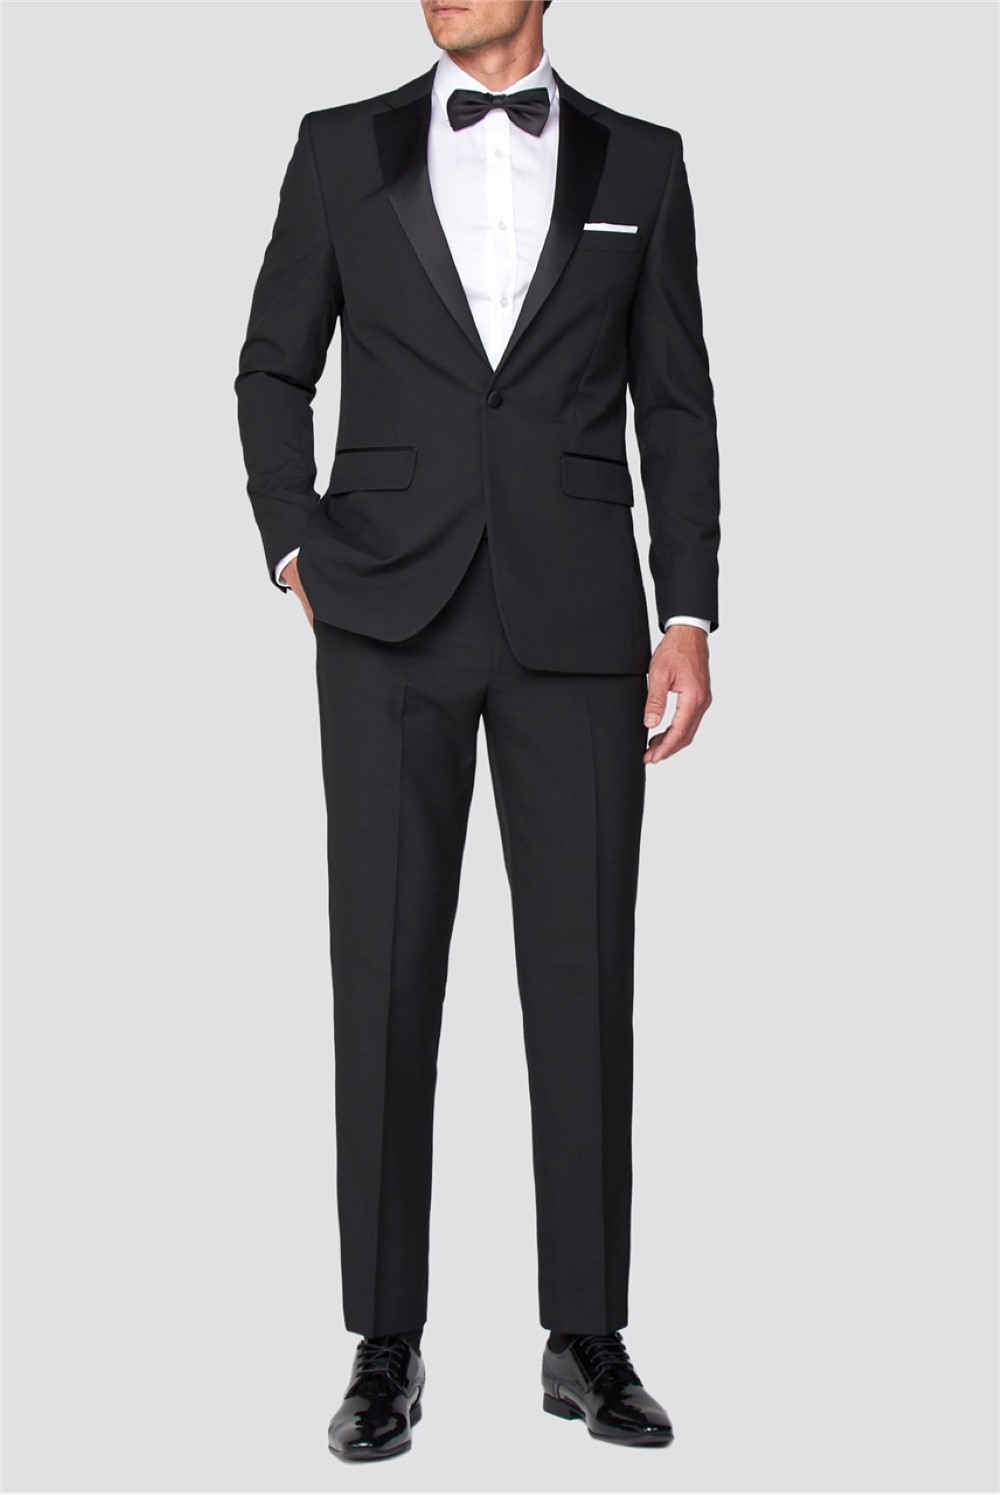 wedding guest - mens suits - Suit direct